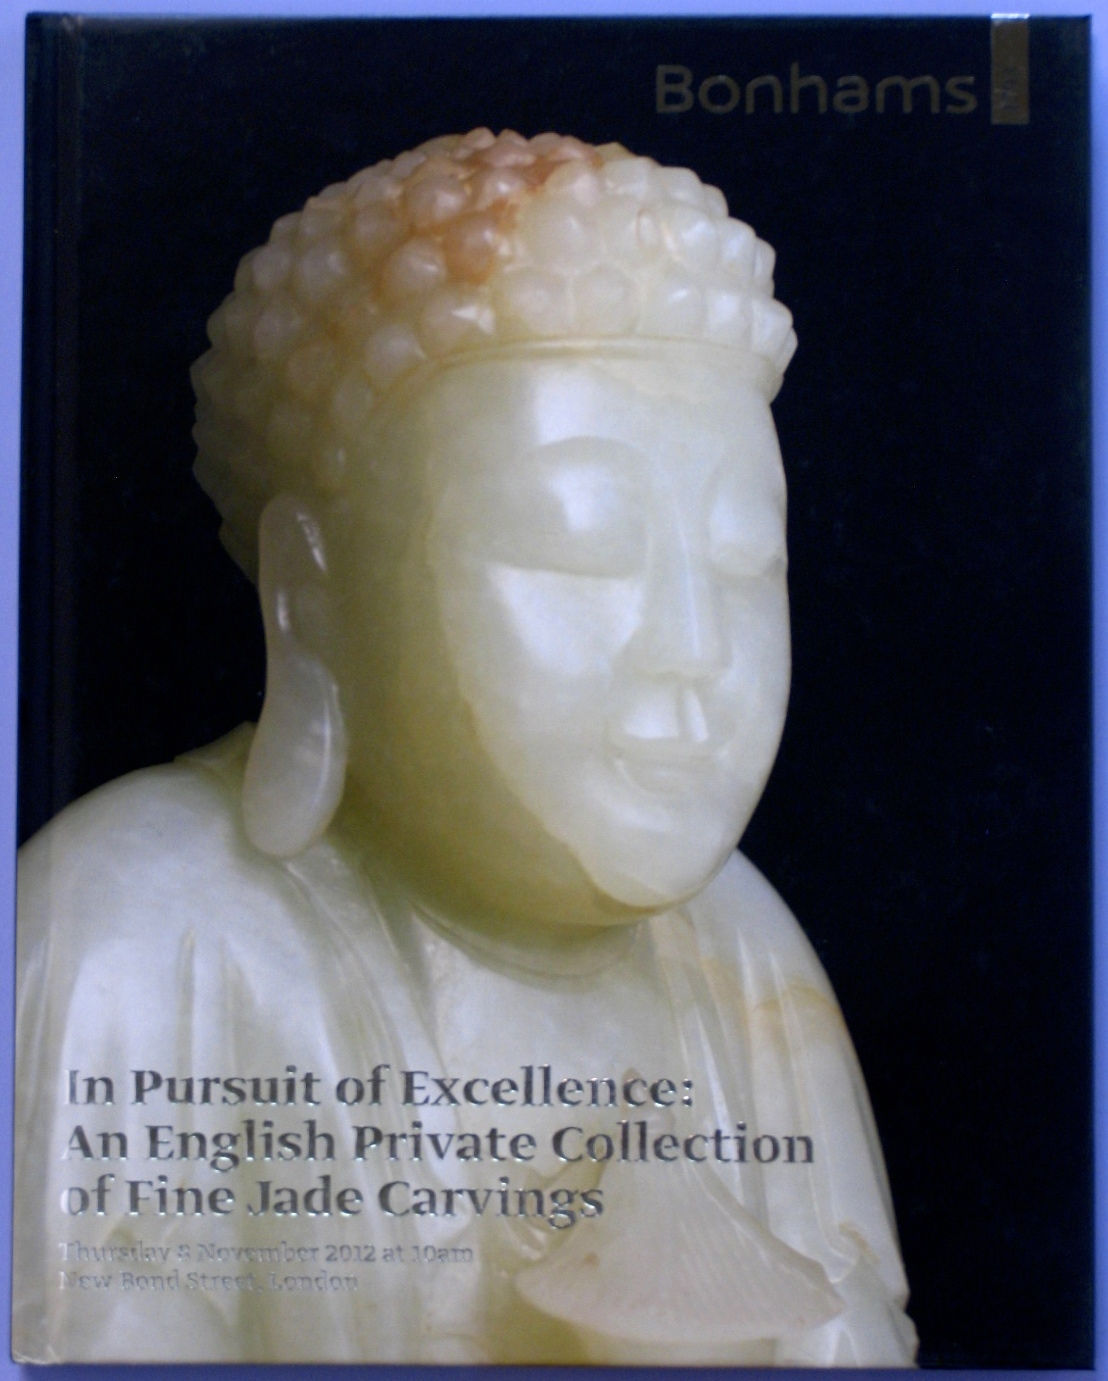 BL20121108: Bookshop: [2012] Bonhams London In Pursuit of Excellence: An English Private Collection of Fine Jade Carvings